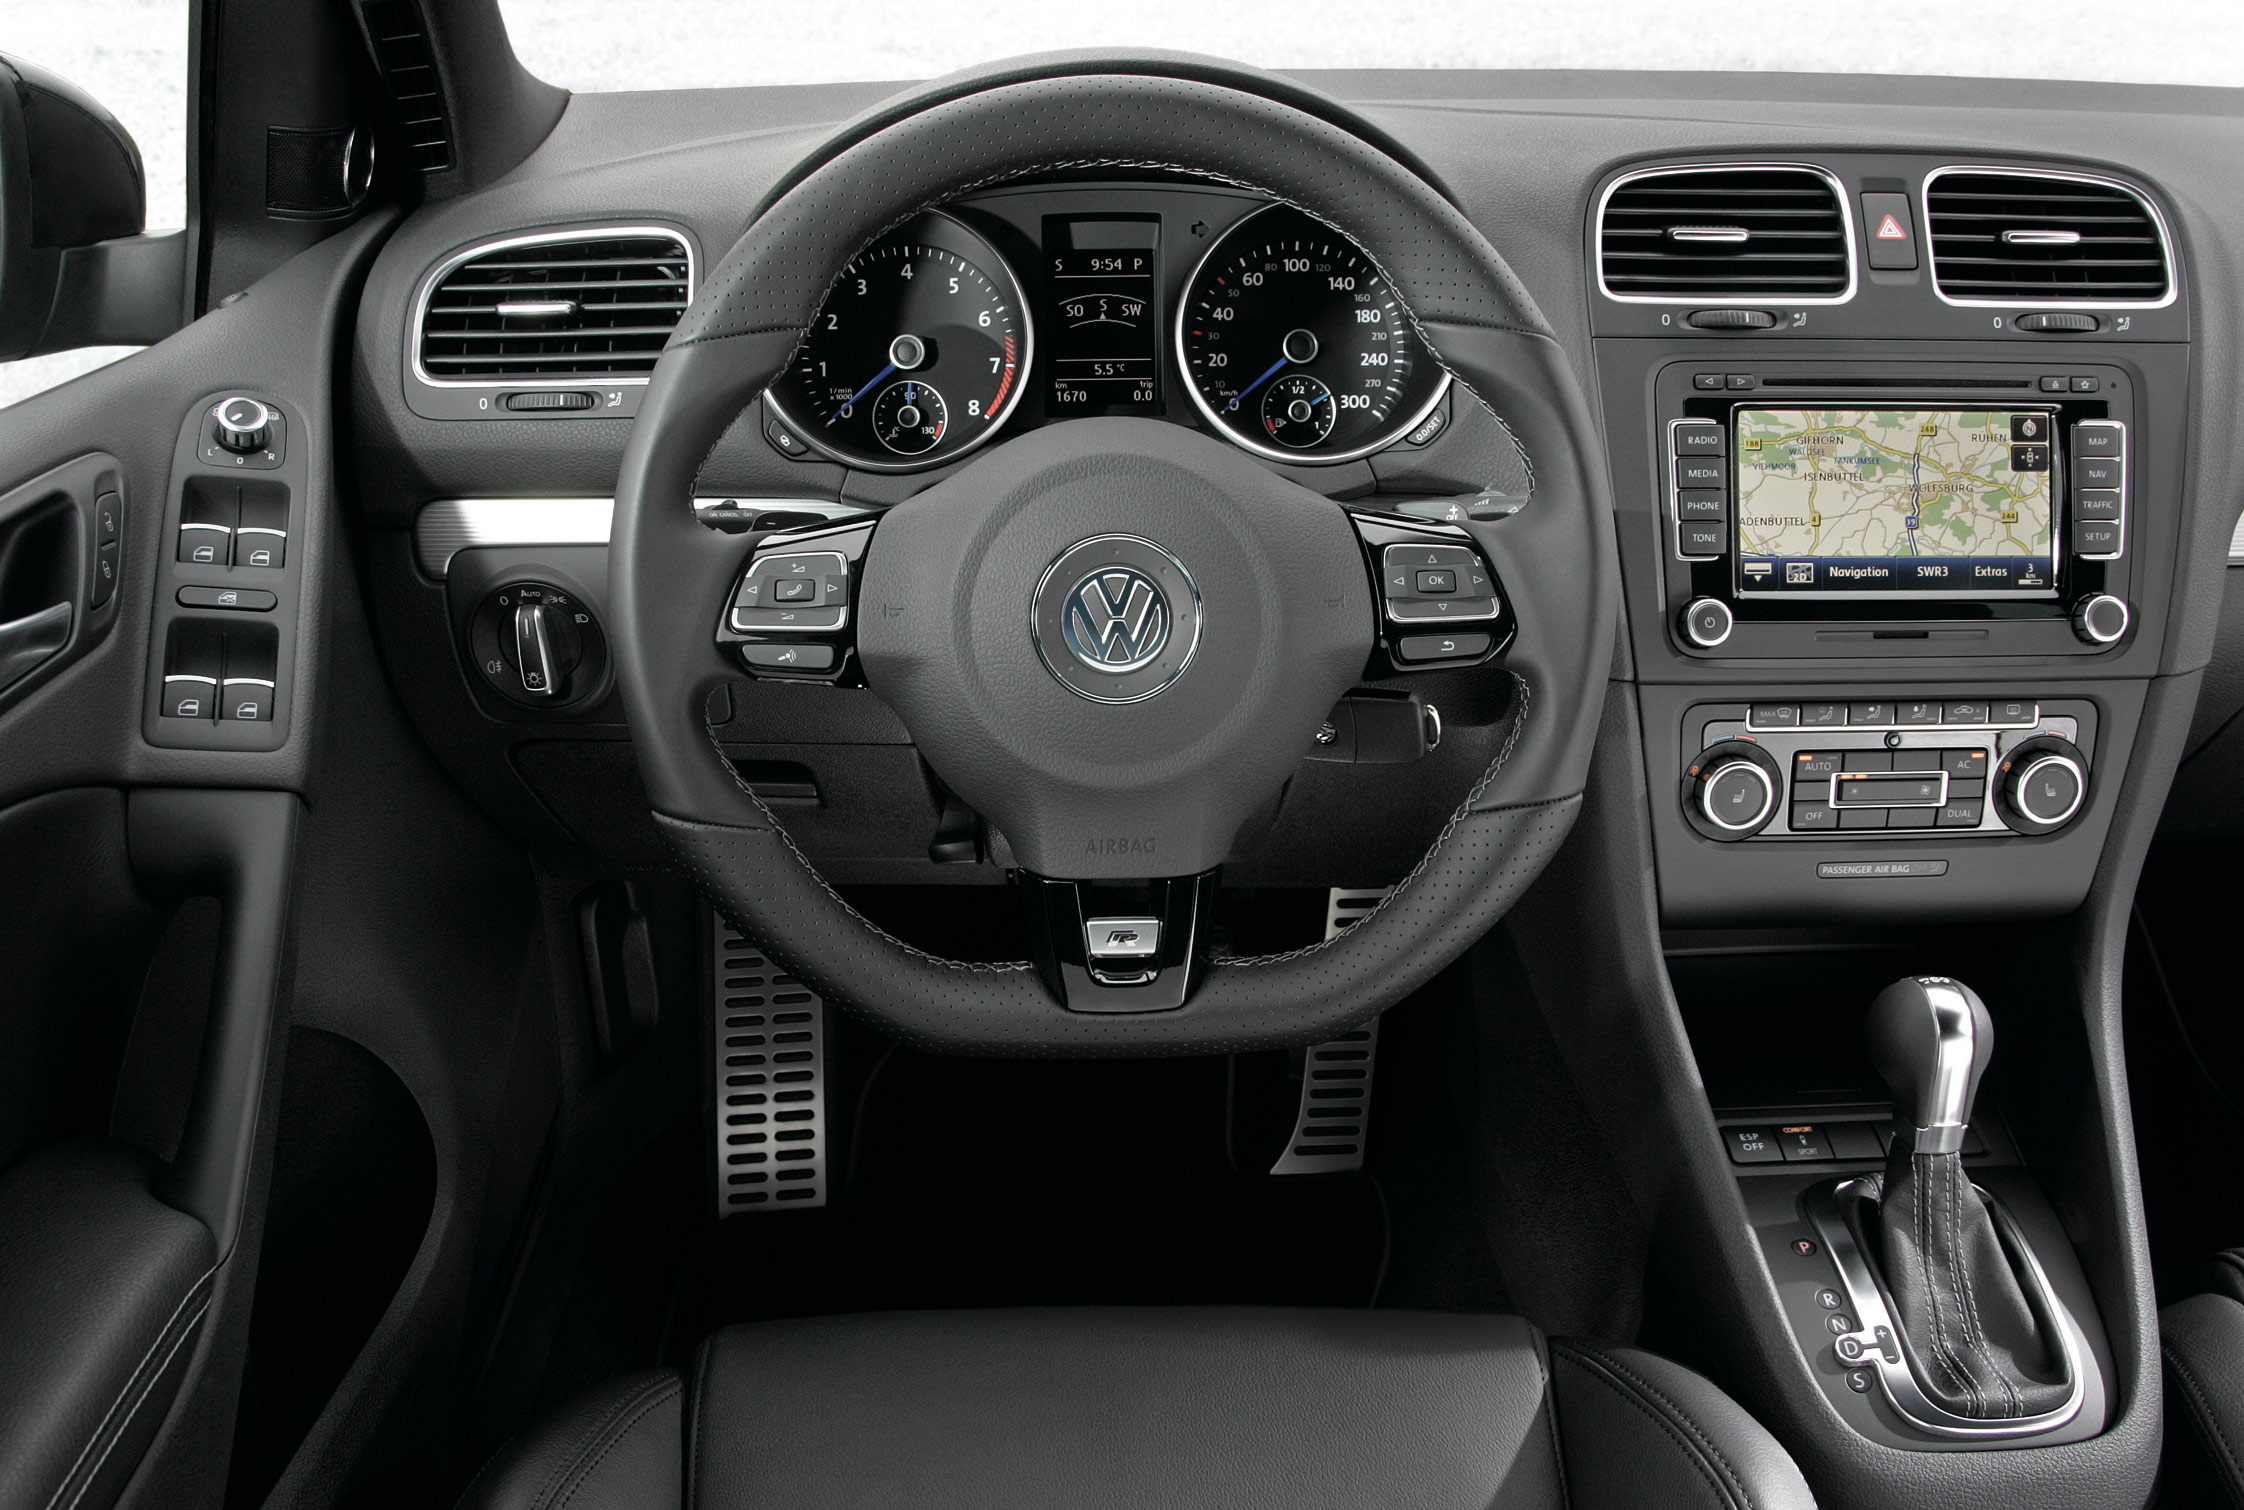 Essai volkswagen golf vi r motorlegend for Golf 6 gti interieur